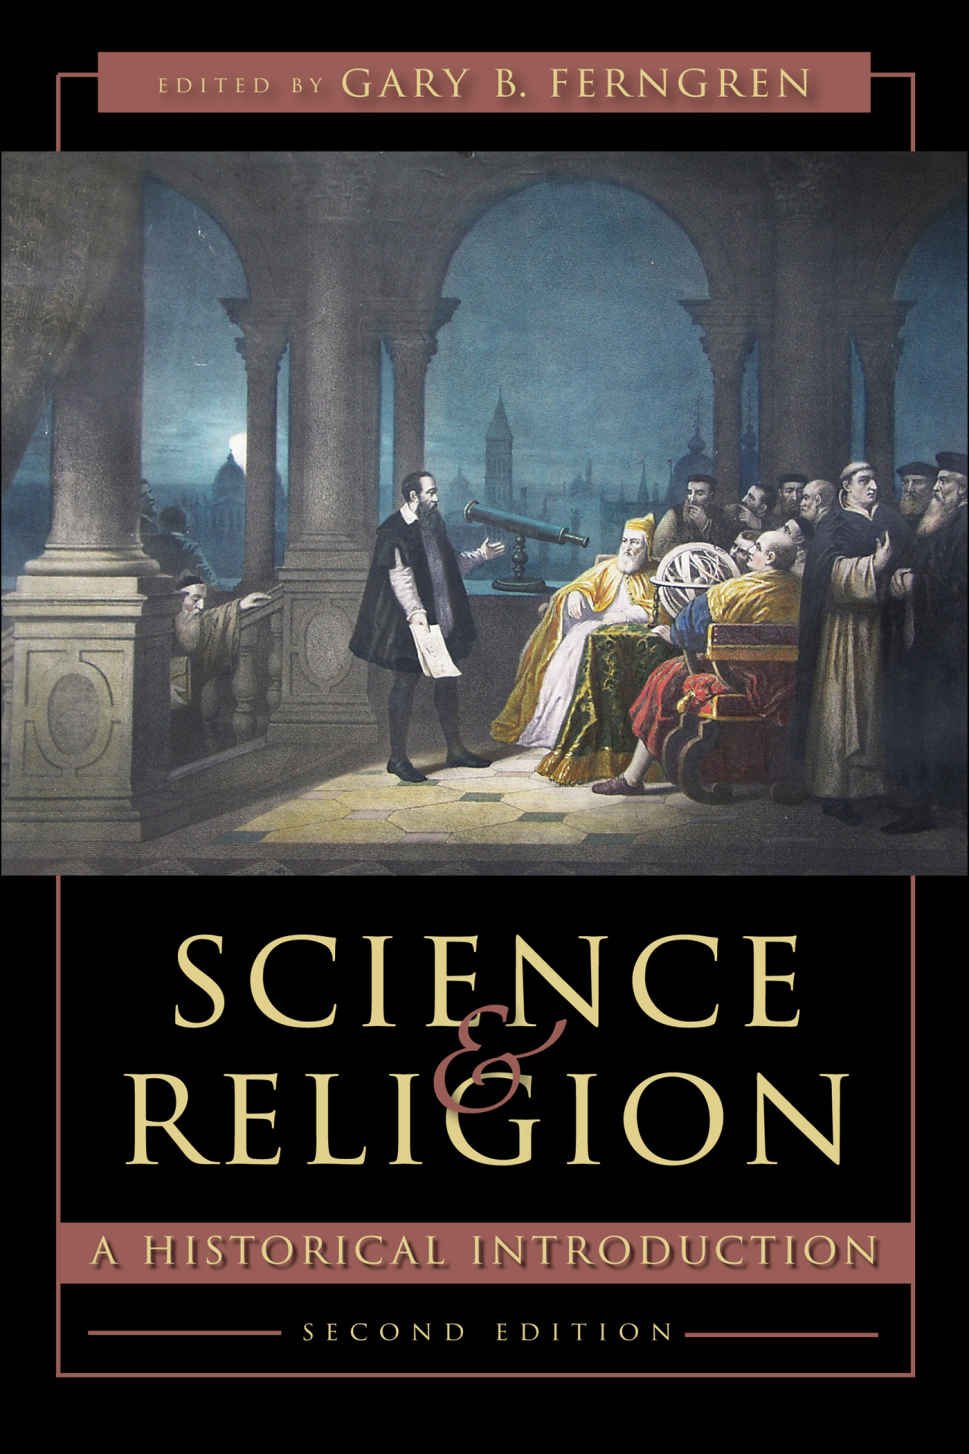 Science & Religion Book Cover is a painting of men with telescope & globe